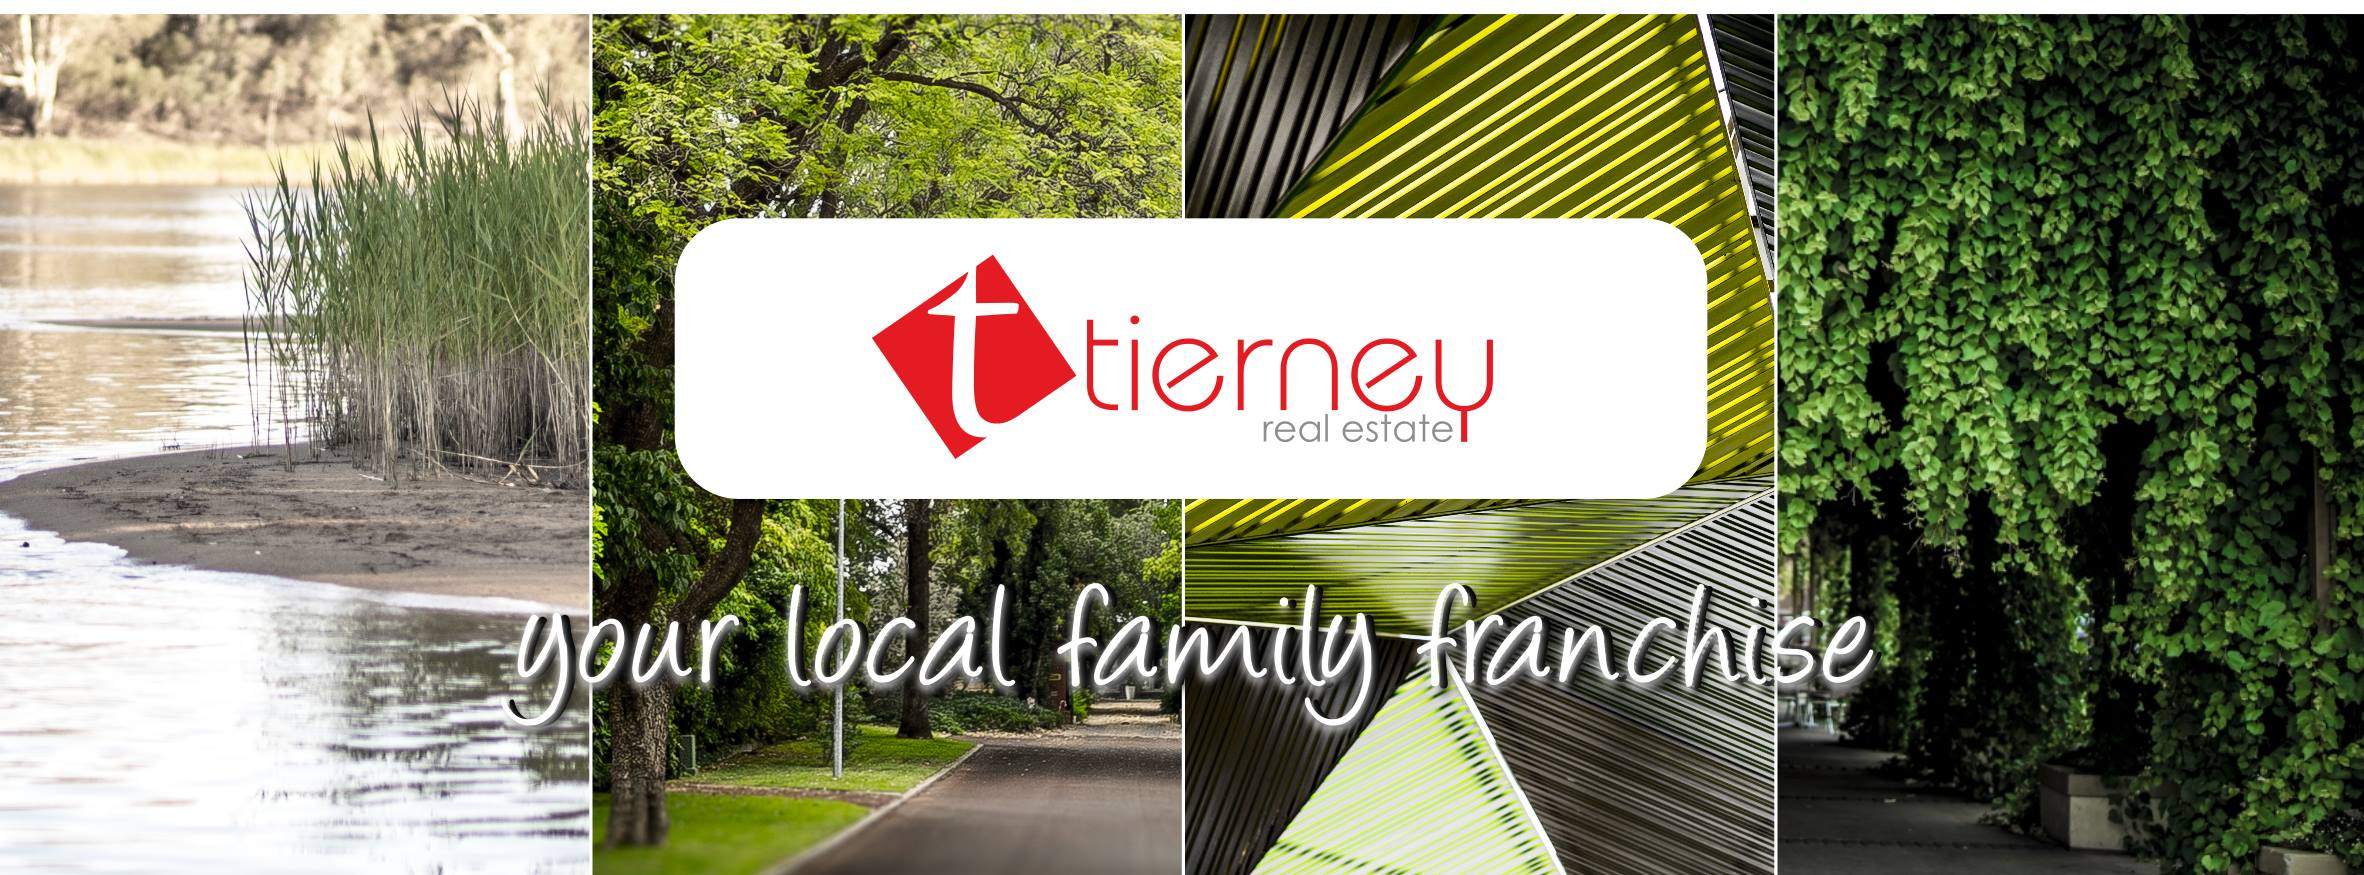 Tierney Real Estate